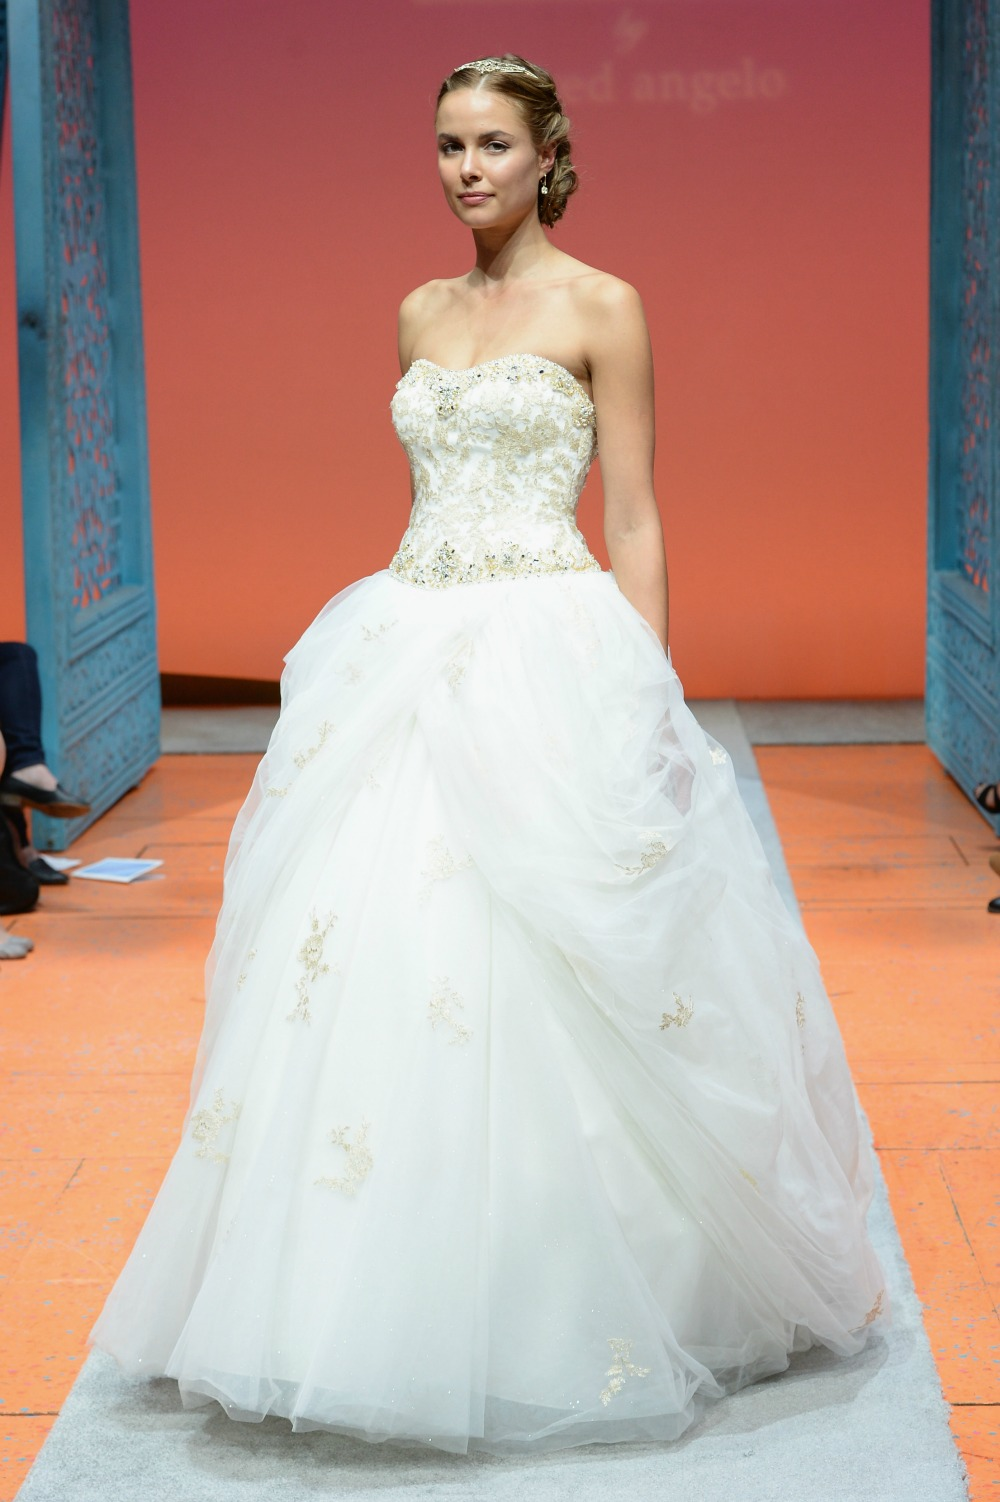 The 2016 Disney Fairy Tale Weddings Collection By Alfred